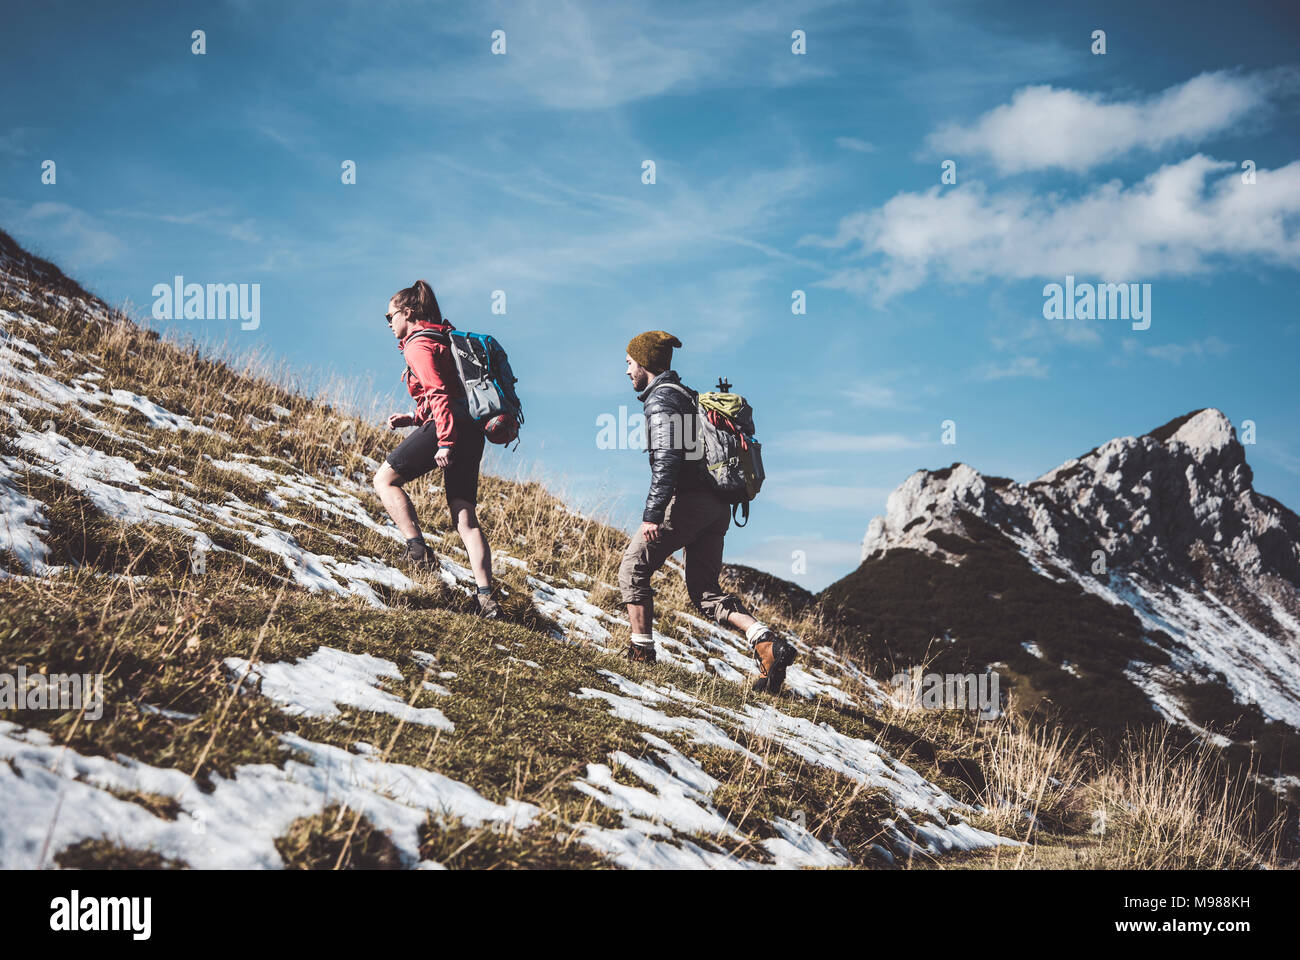 Austria, Tyrol, young couple hiking in the mountains - Stock Image